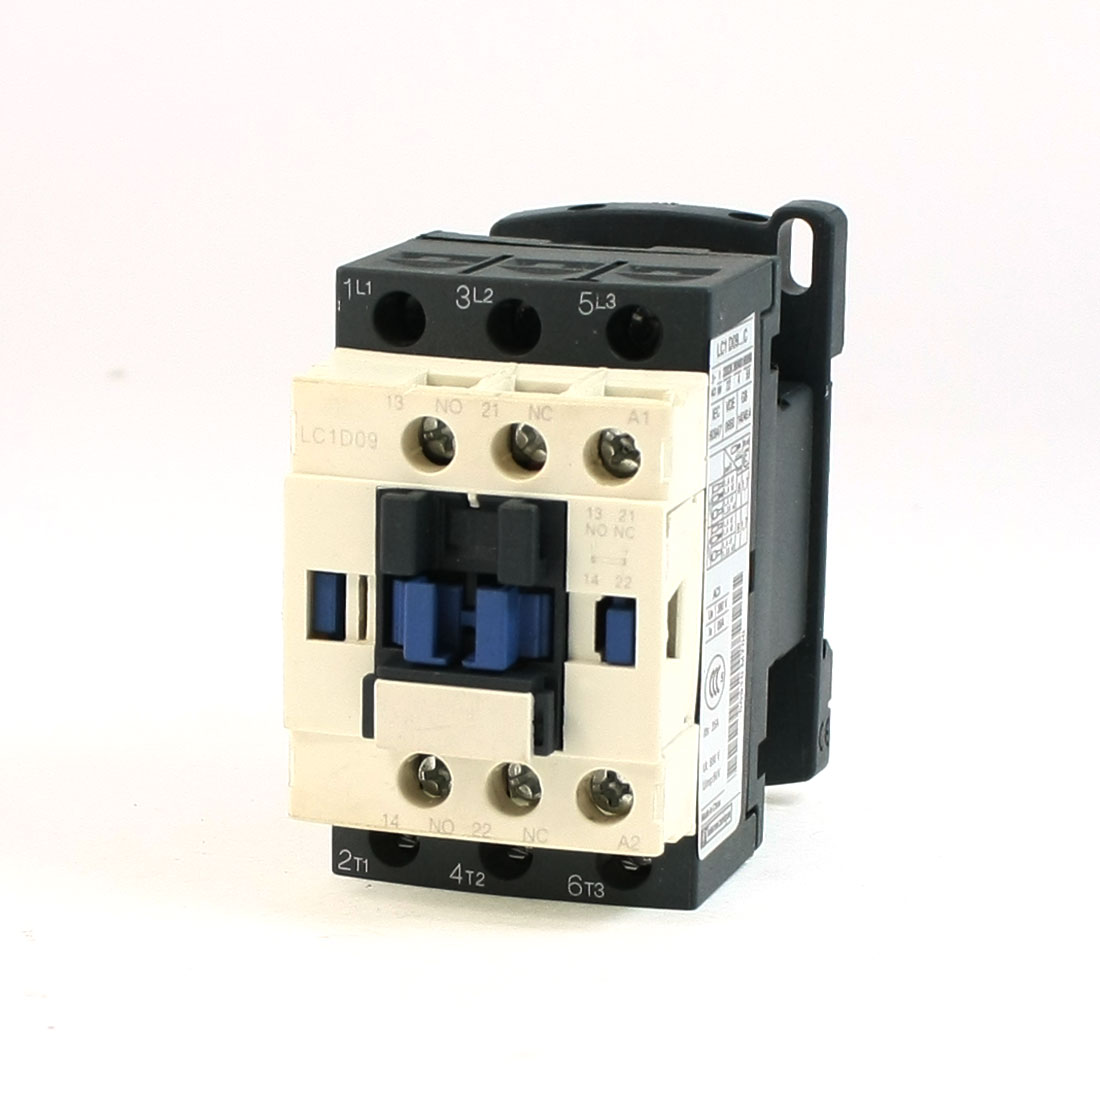 LC1D09 AC Contactor 110 Volts 50/60Hz Coil 3-Pole NO NC